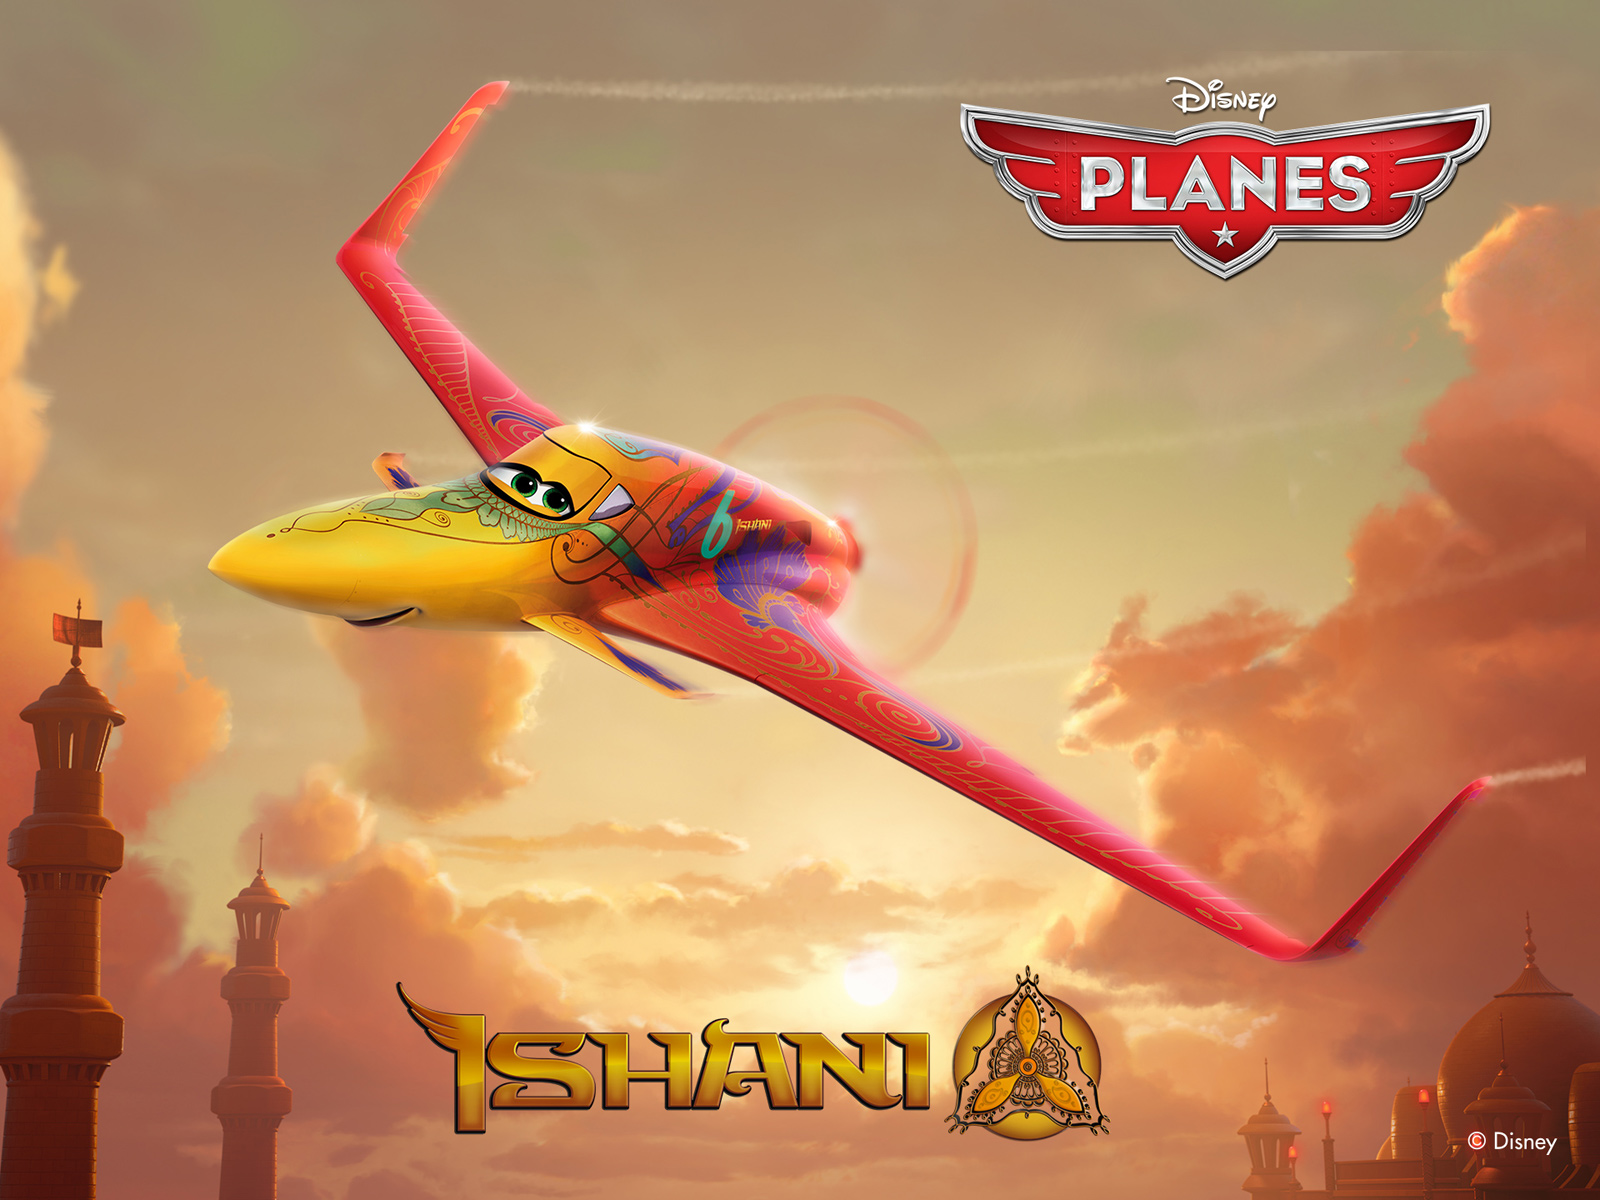 Disneys Planes Wallpaper Ishani Standard Check out Priyanka Chopras Ishani in Disneys Planes